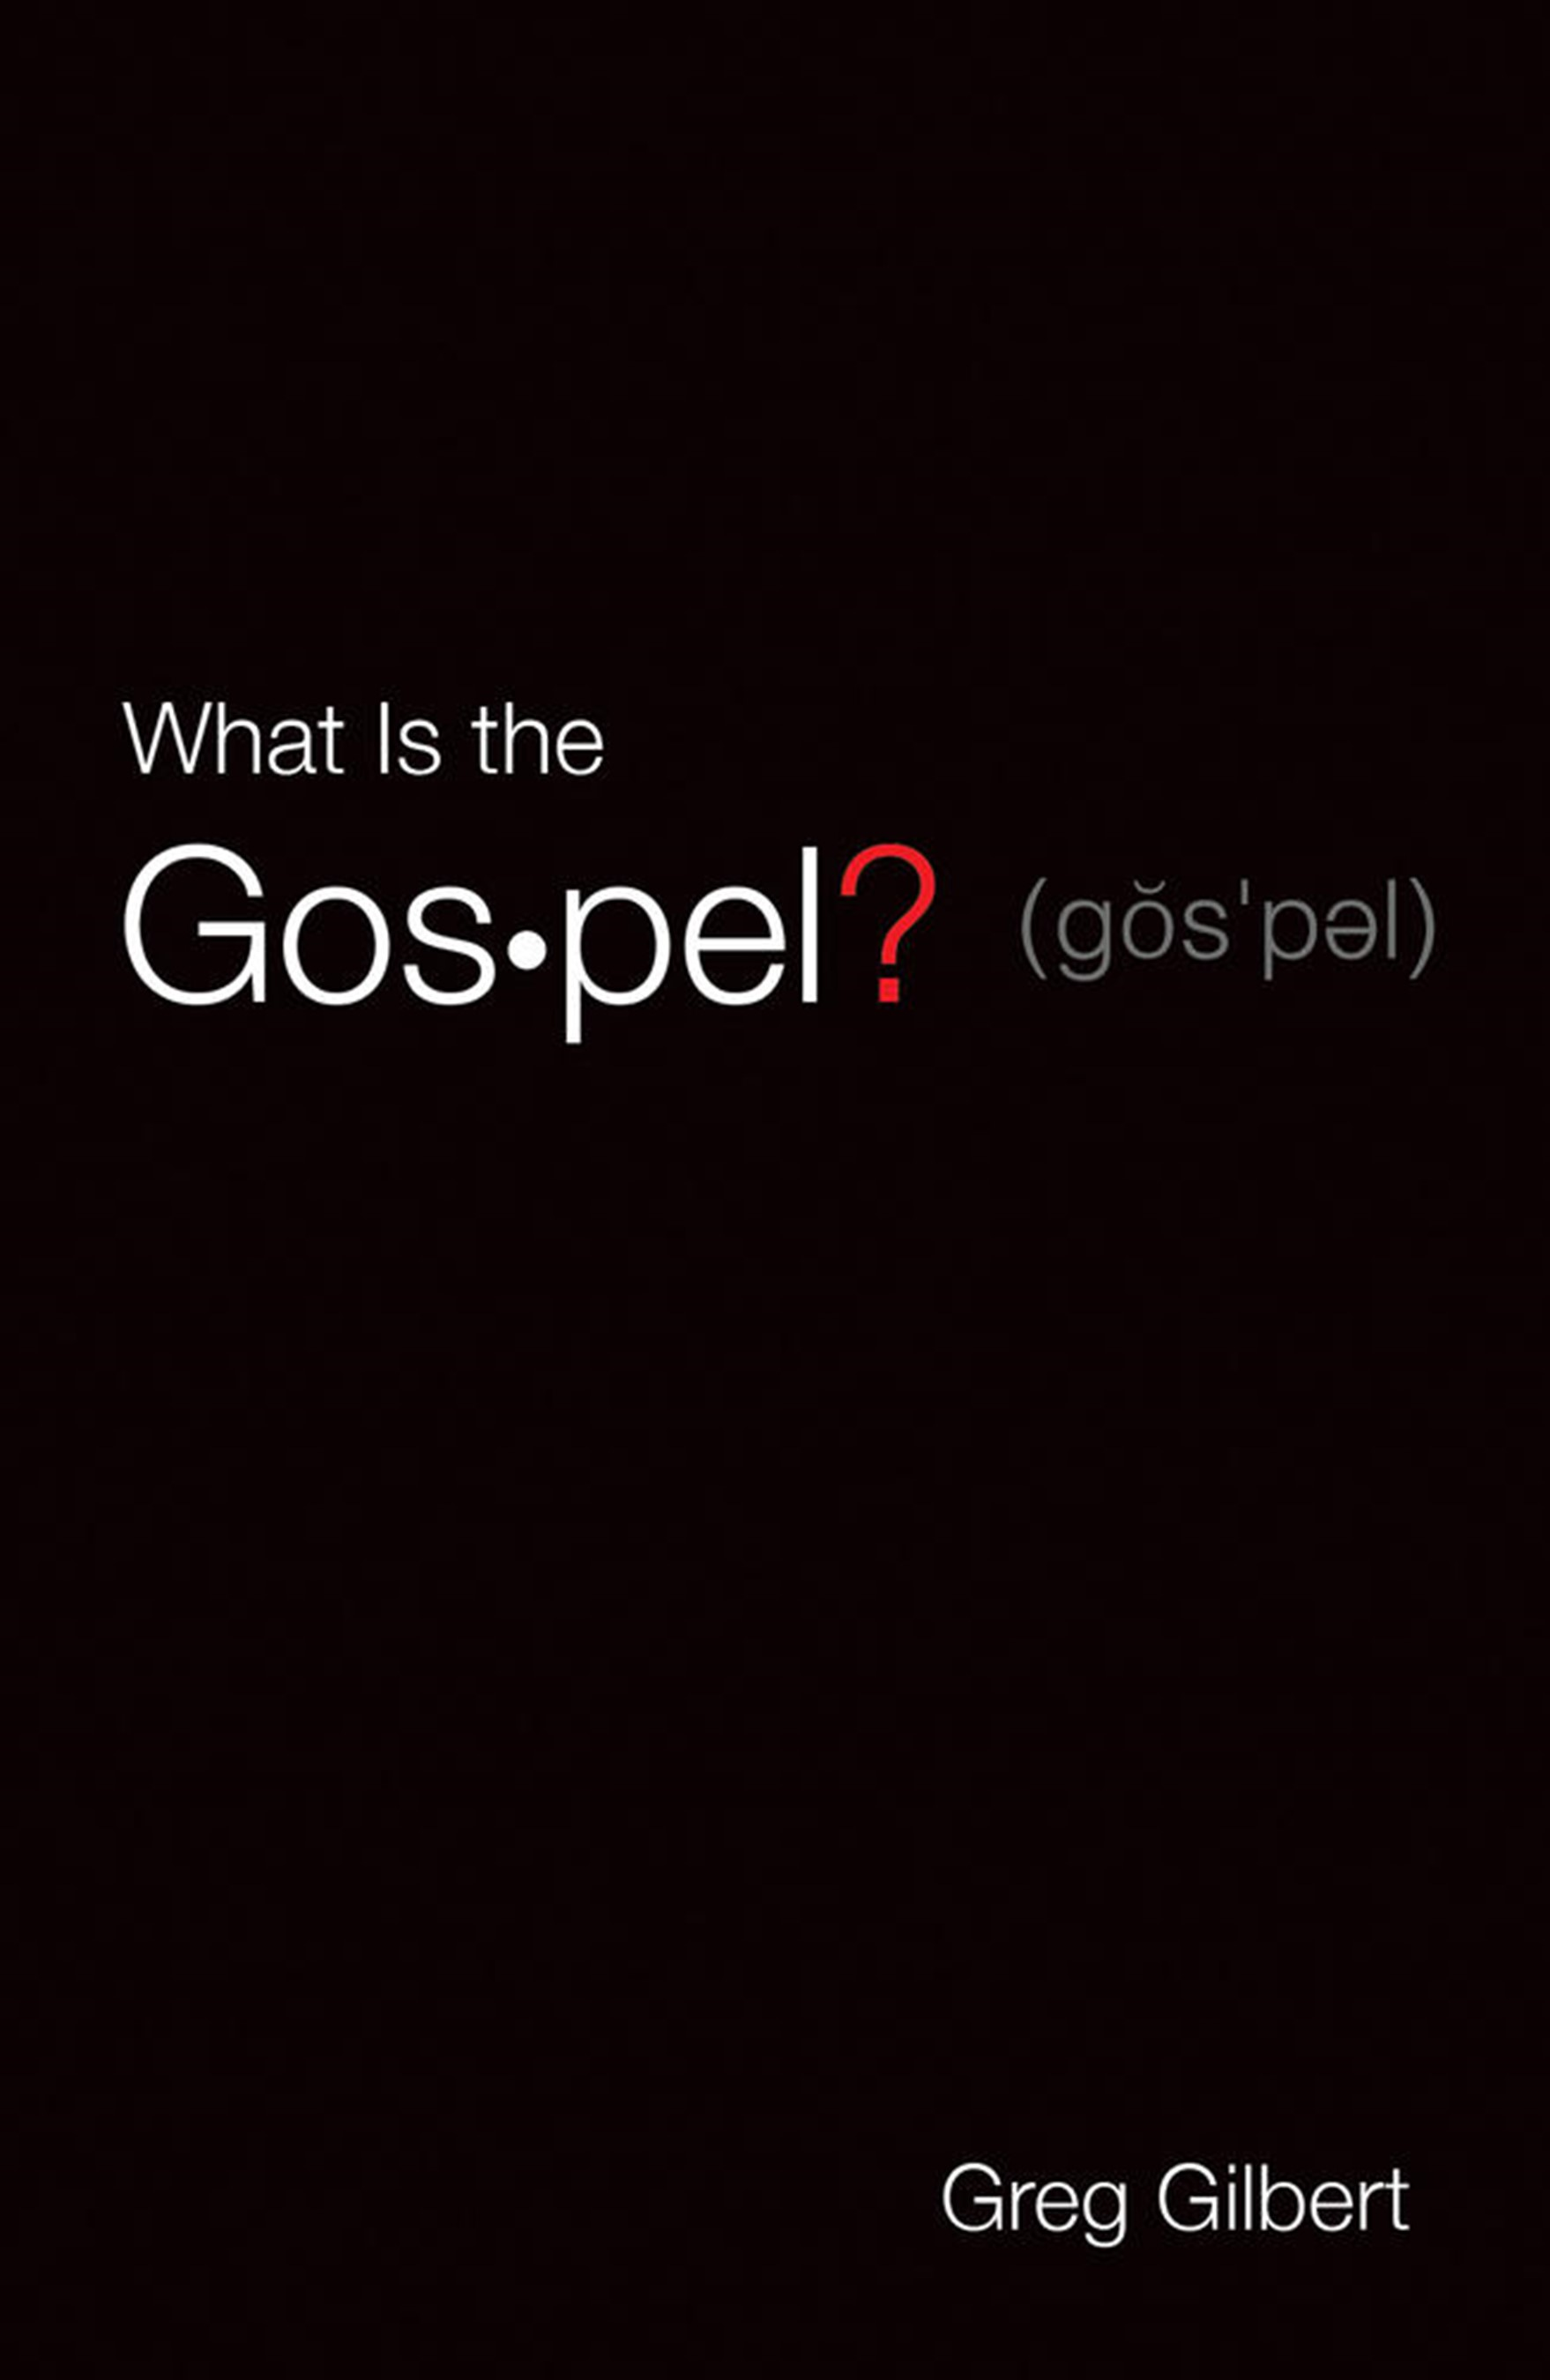 What is the gospel - Gilbert